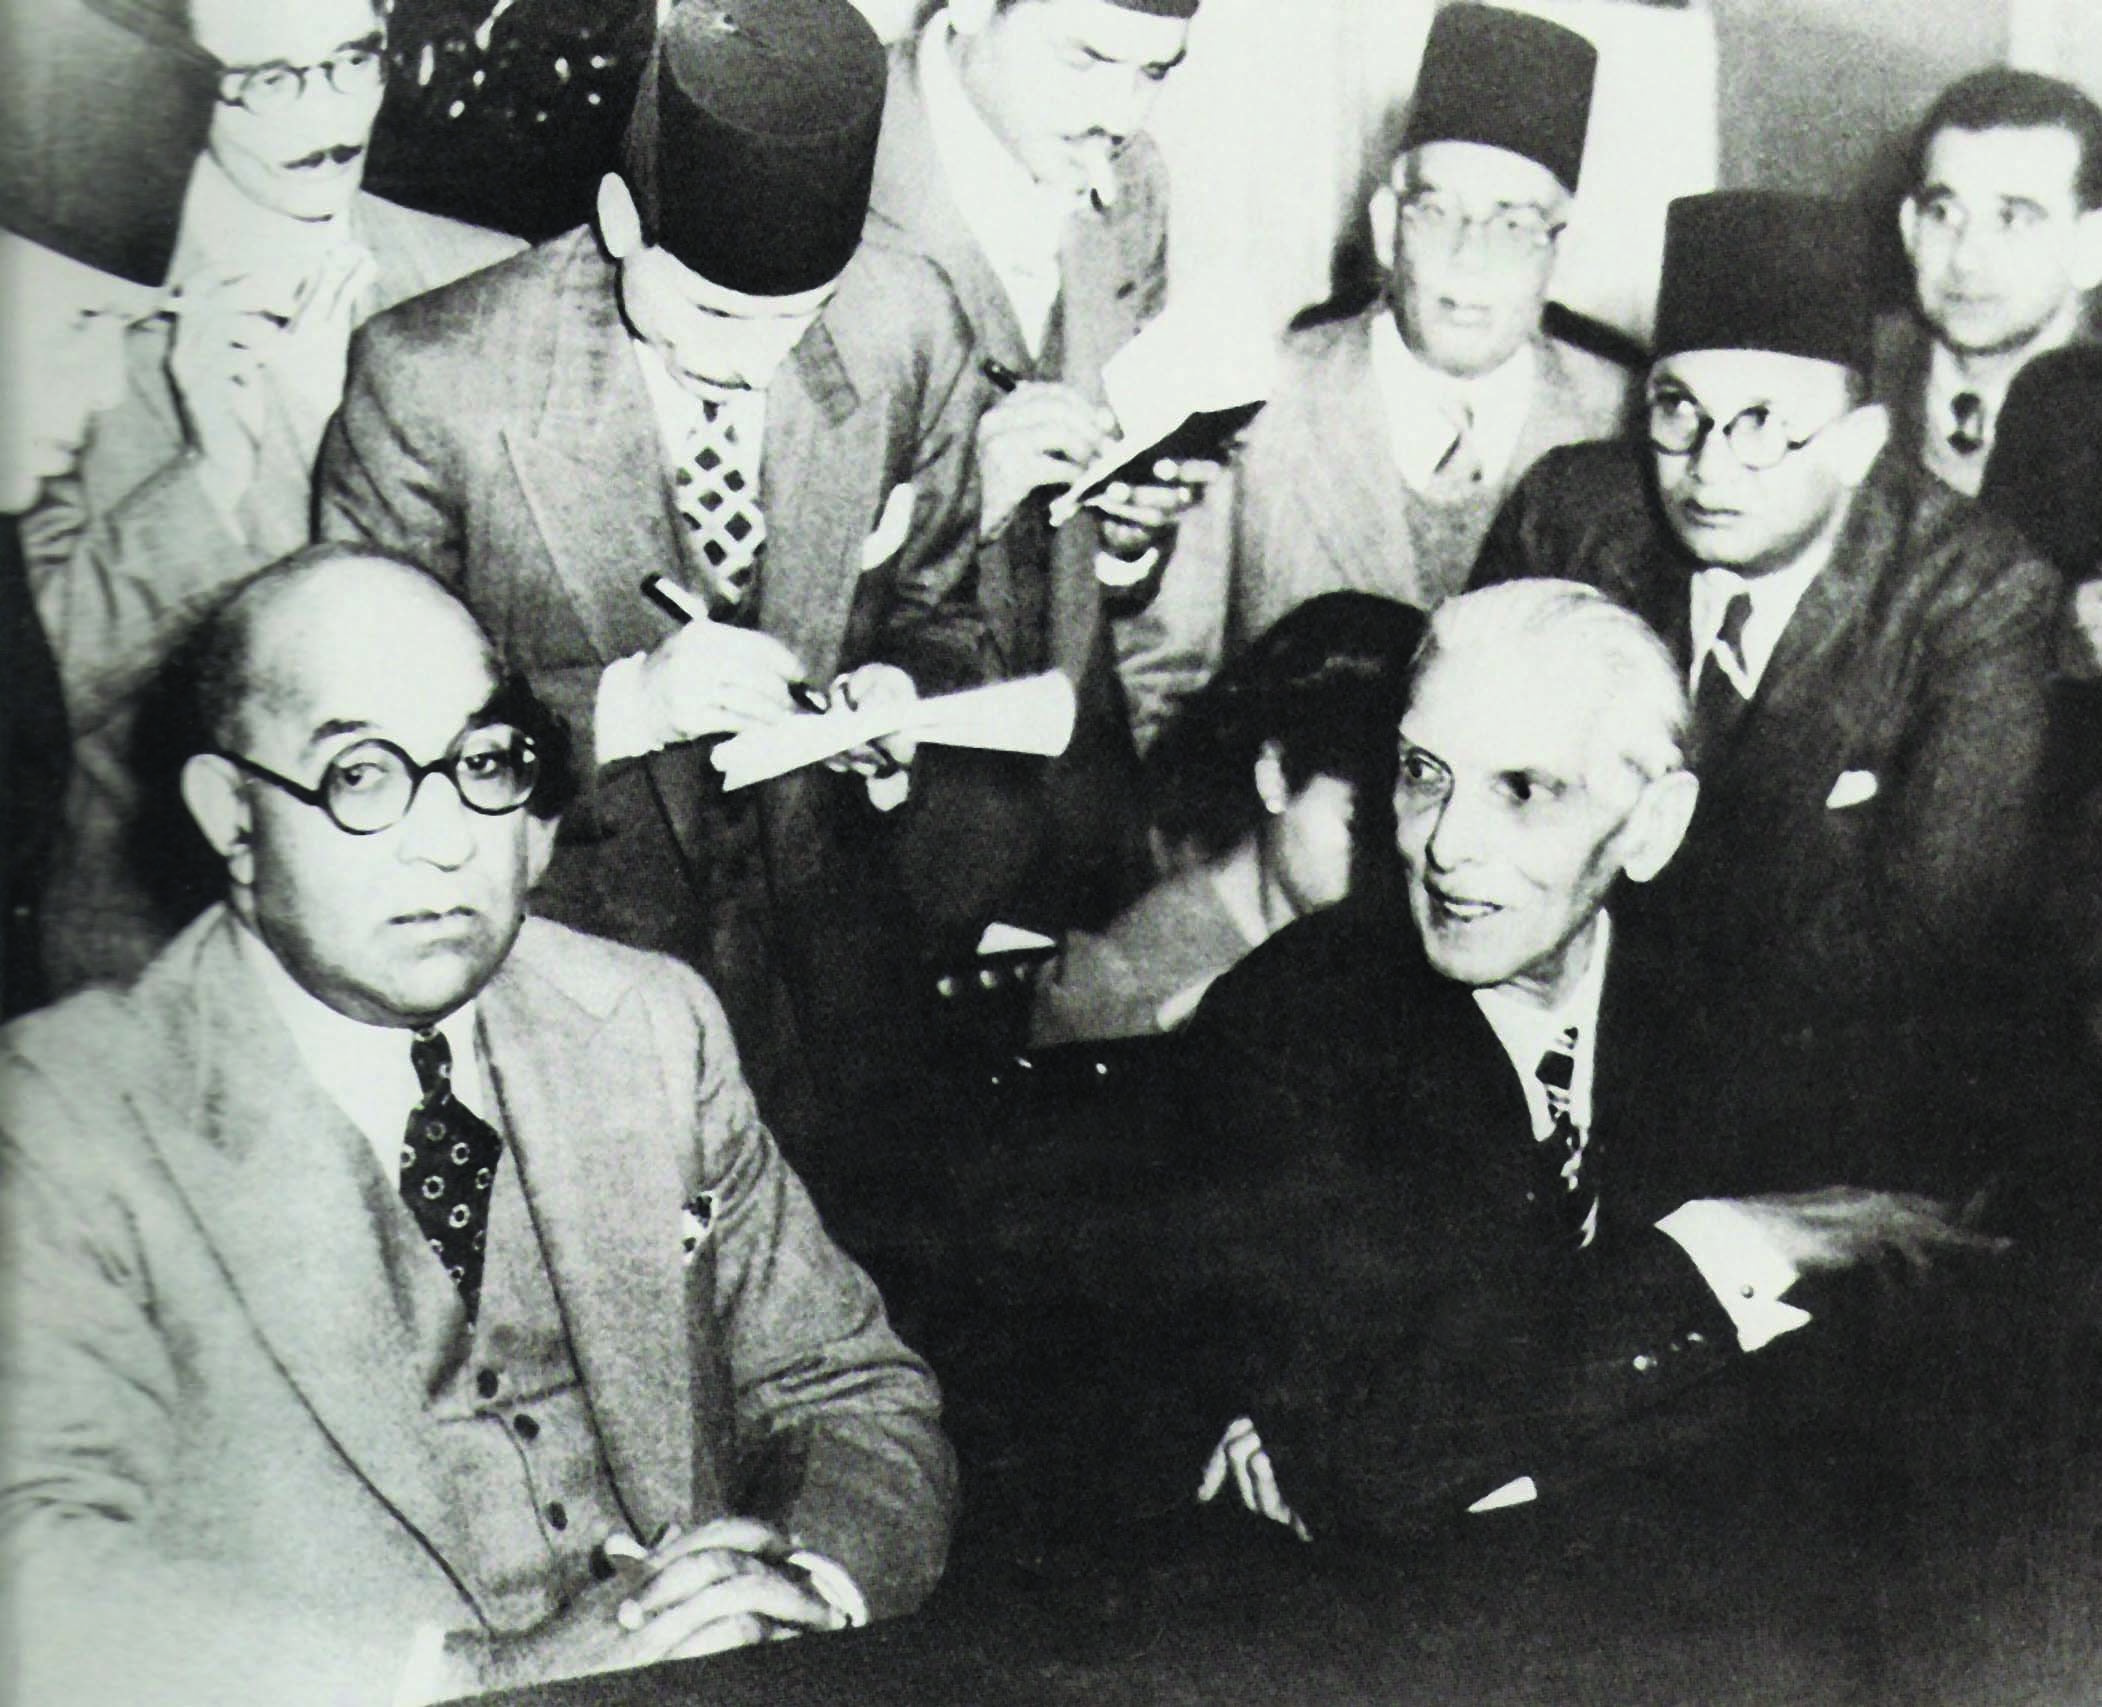 Quaid-i-Azam Mohammad Ali Jinnah and Nawabzada Liaquat Ali Khan attend a press conference in Cairo in December 1946. They appeal to the leaders of the Muslim World to support India's Muslims in their struggle for independence. —​ Dawn/White Star Archives